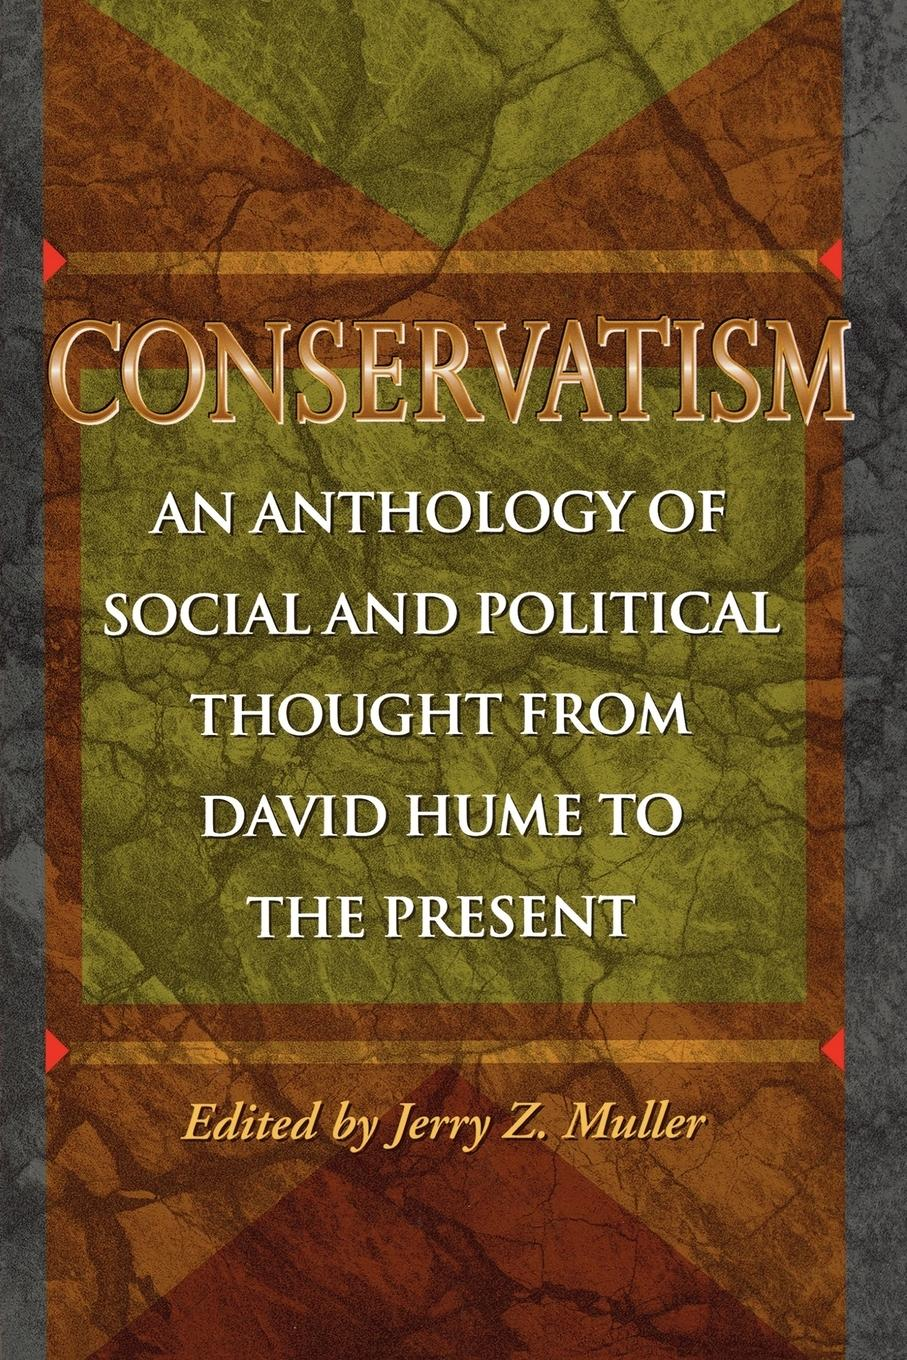 Conservatism  An Anthology of Social and Political Thought from David Hume to the Present  Jerry Z. Muller  Taschenbuch  Paperback  Englisch  1997 - Muller, Jerry Z.